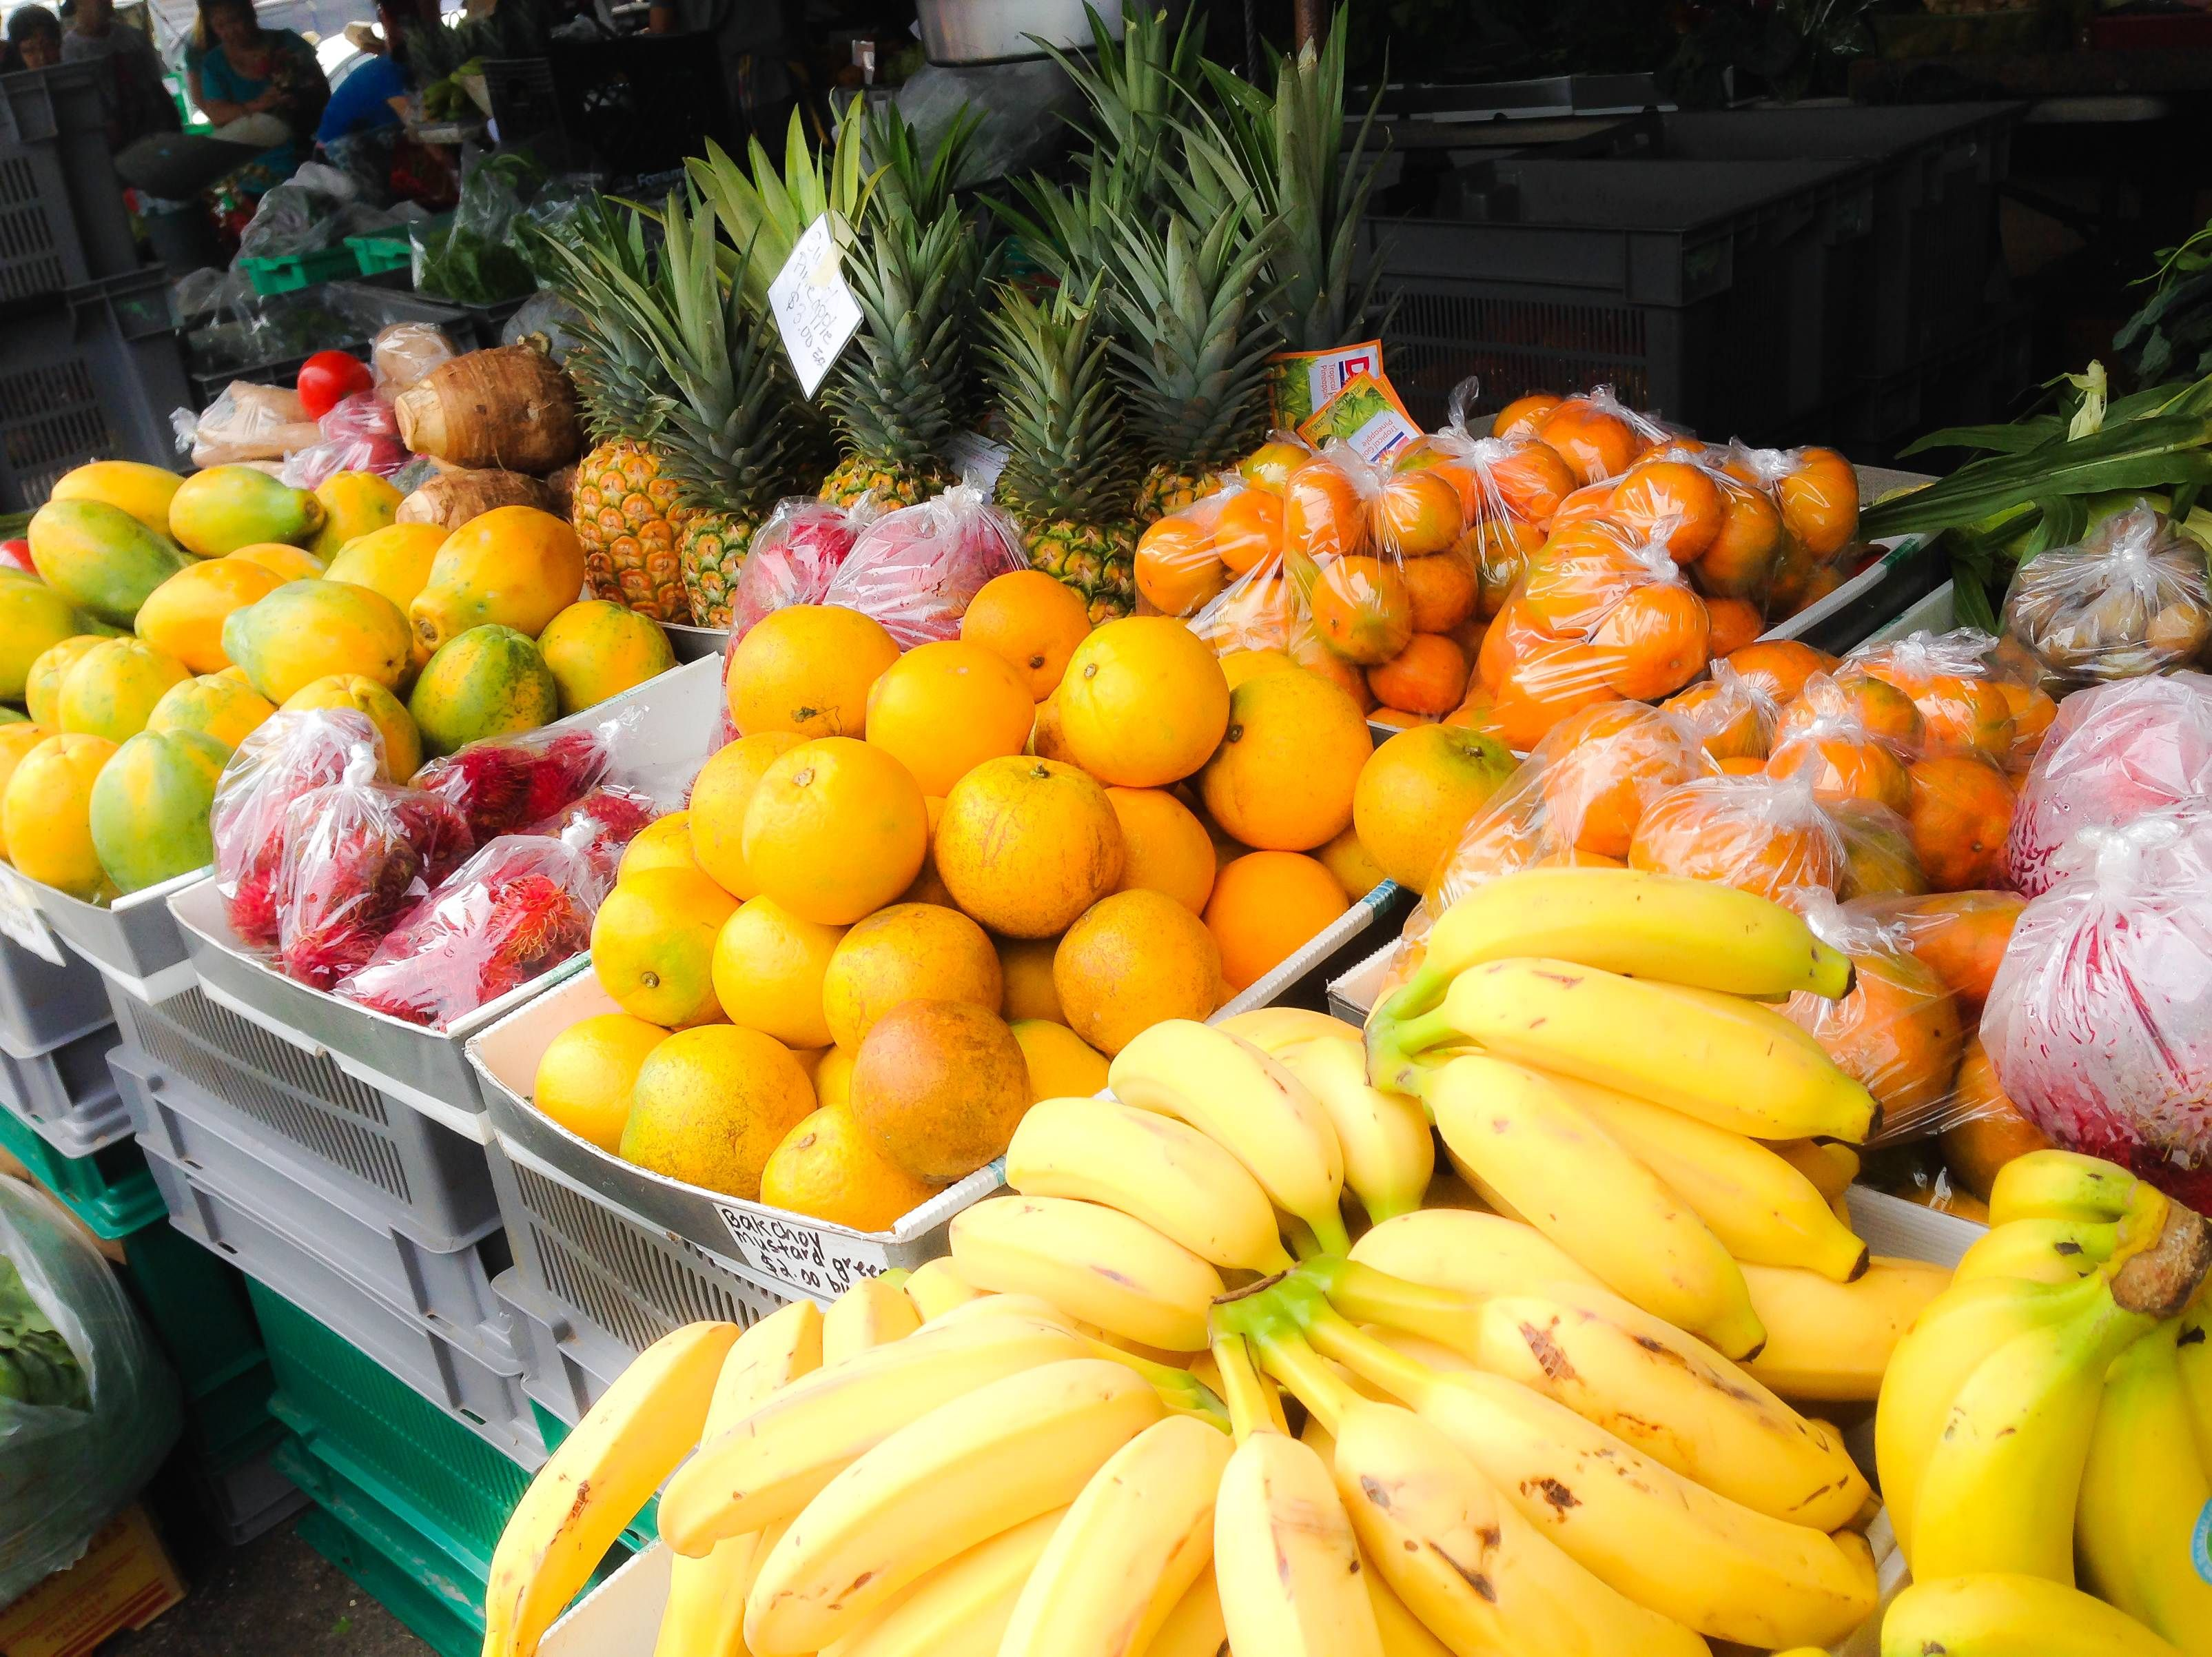 Who's Up For Some Fresh Tropical Fruit From The Hilo